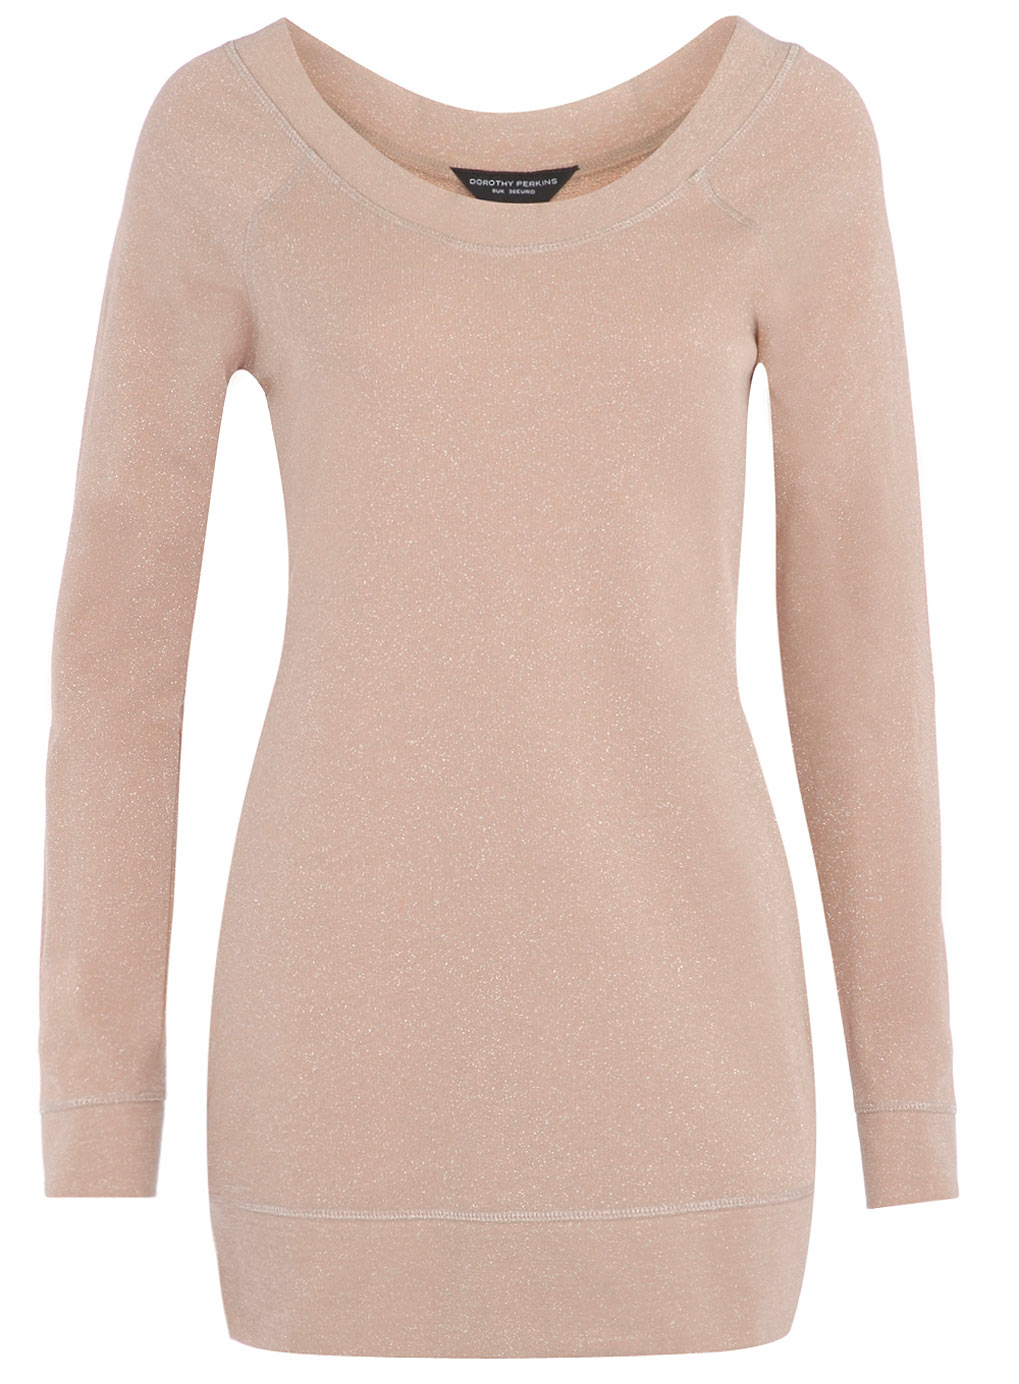 Pink Sparkle Jumper from Dorothy Perkins - £28